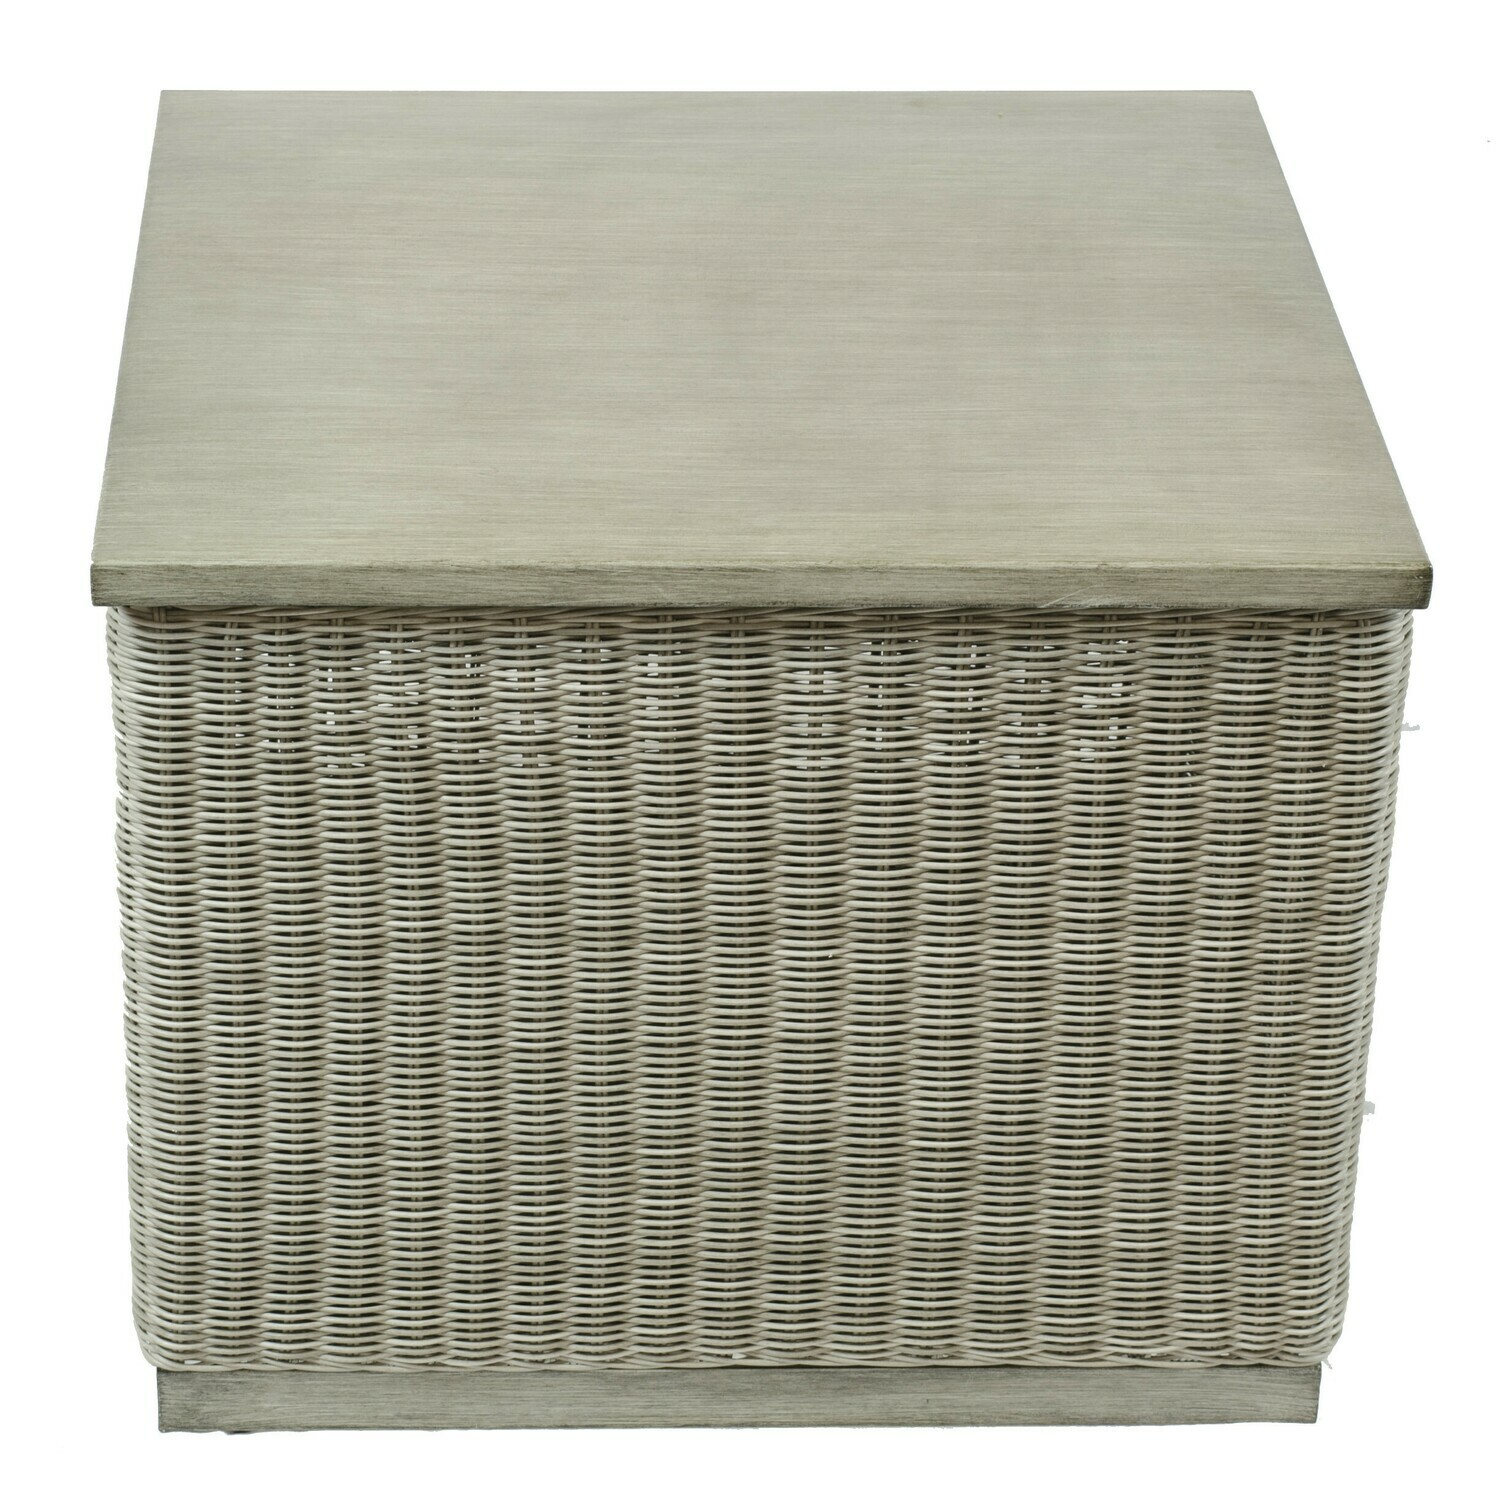 Ashland Wicker Collection Square Accent Table with Storage